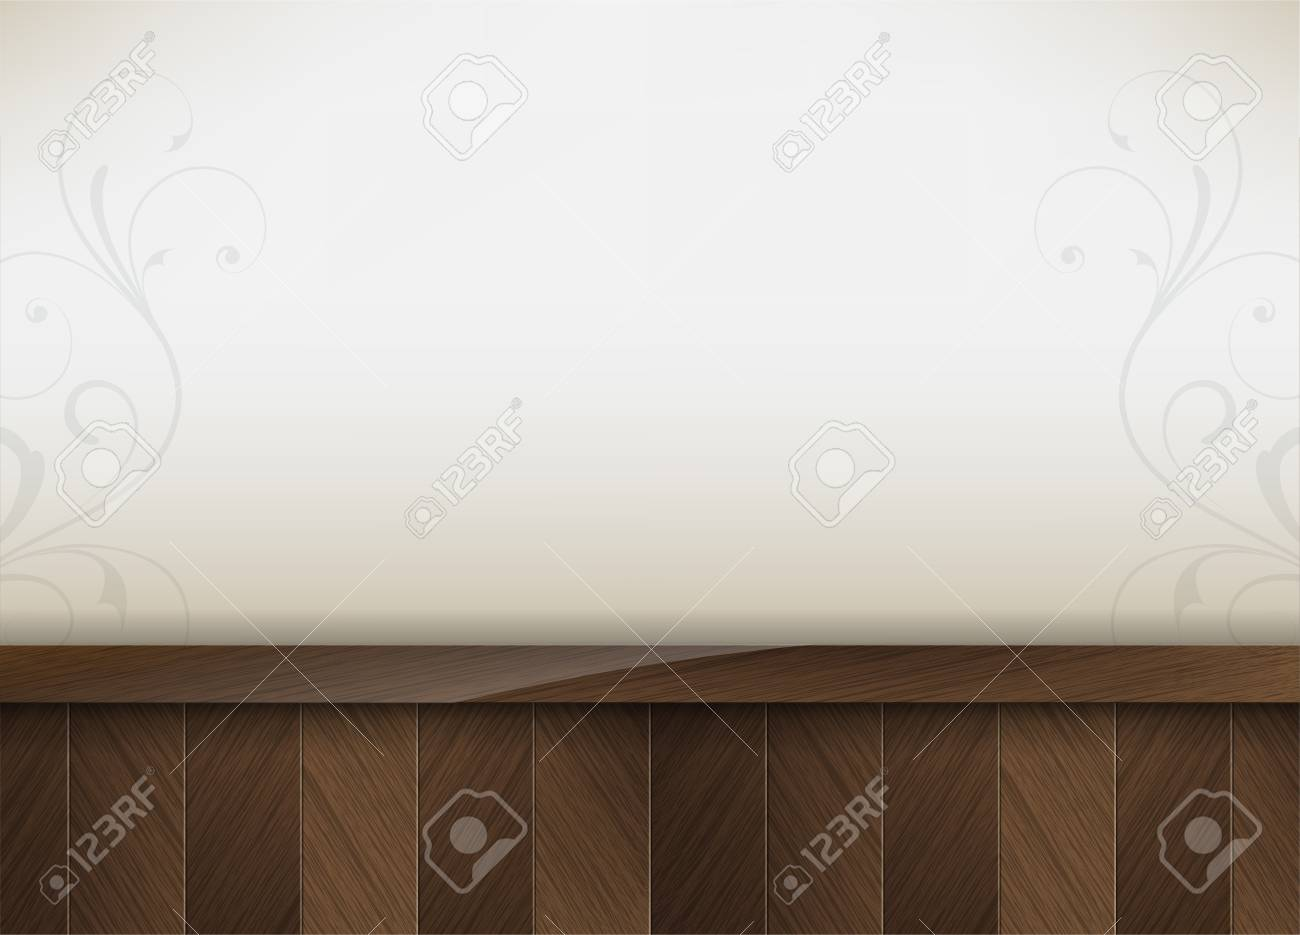 Business background with wood insertion and a white space for text Stock Vector - 18384263